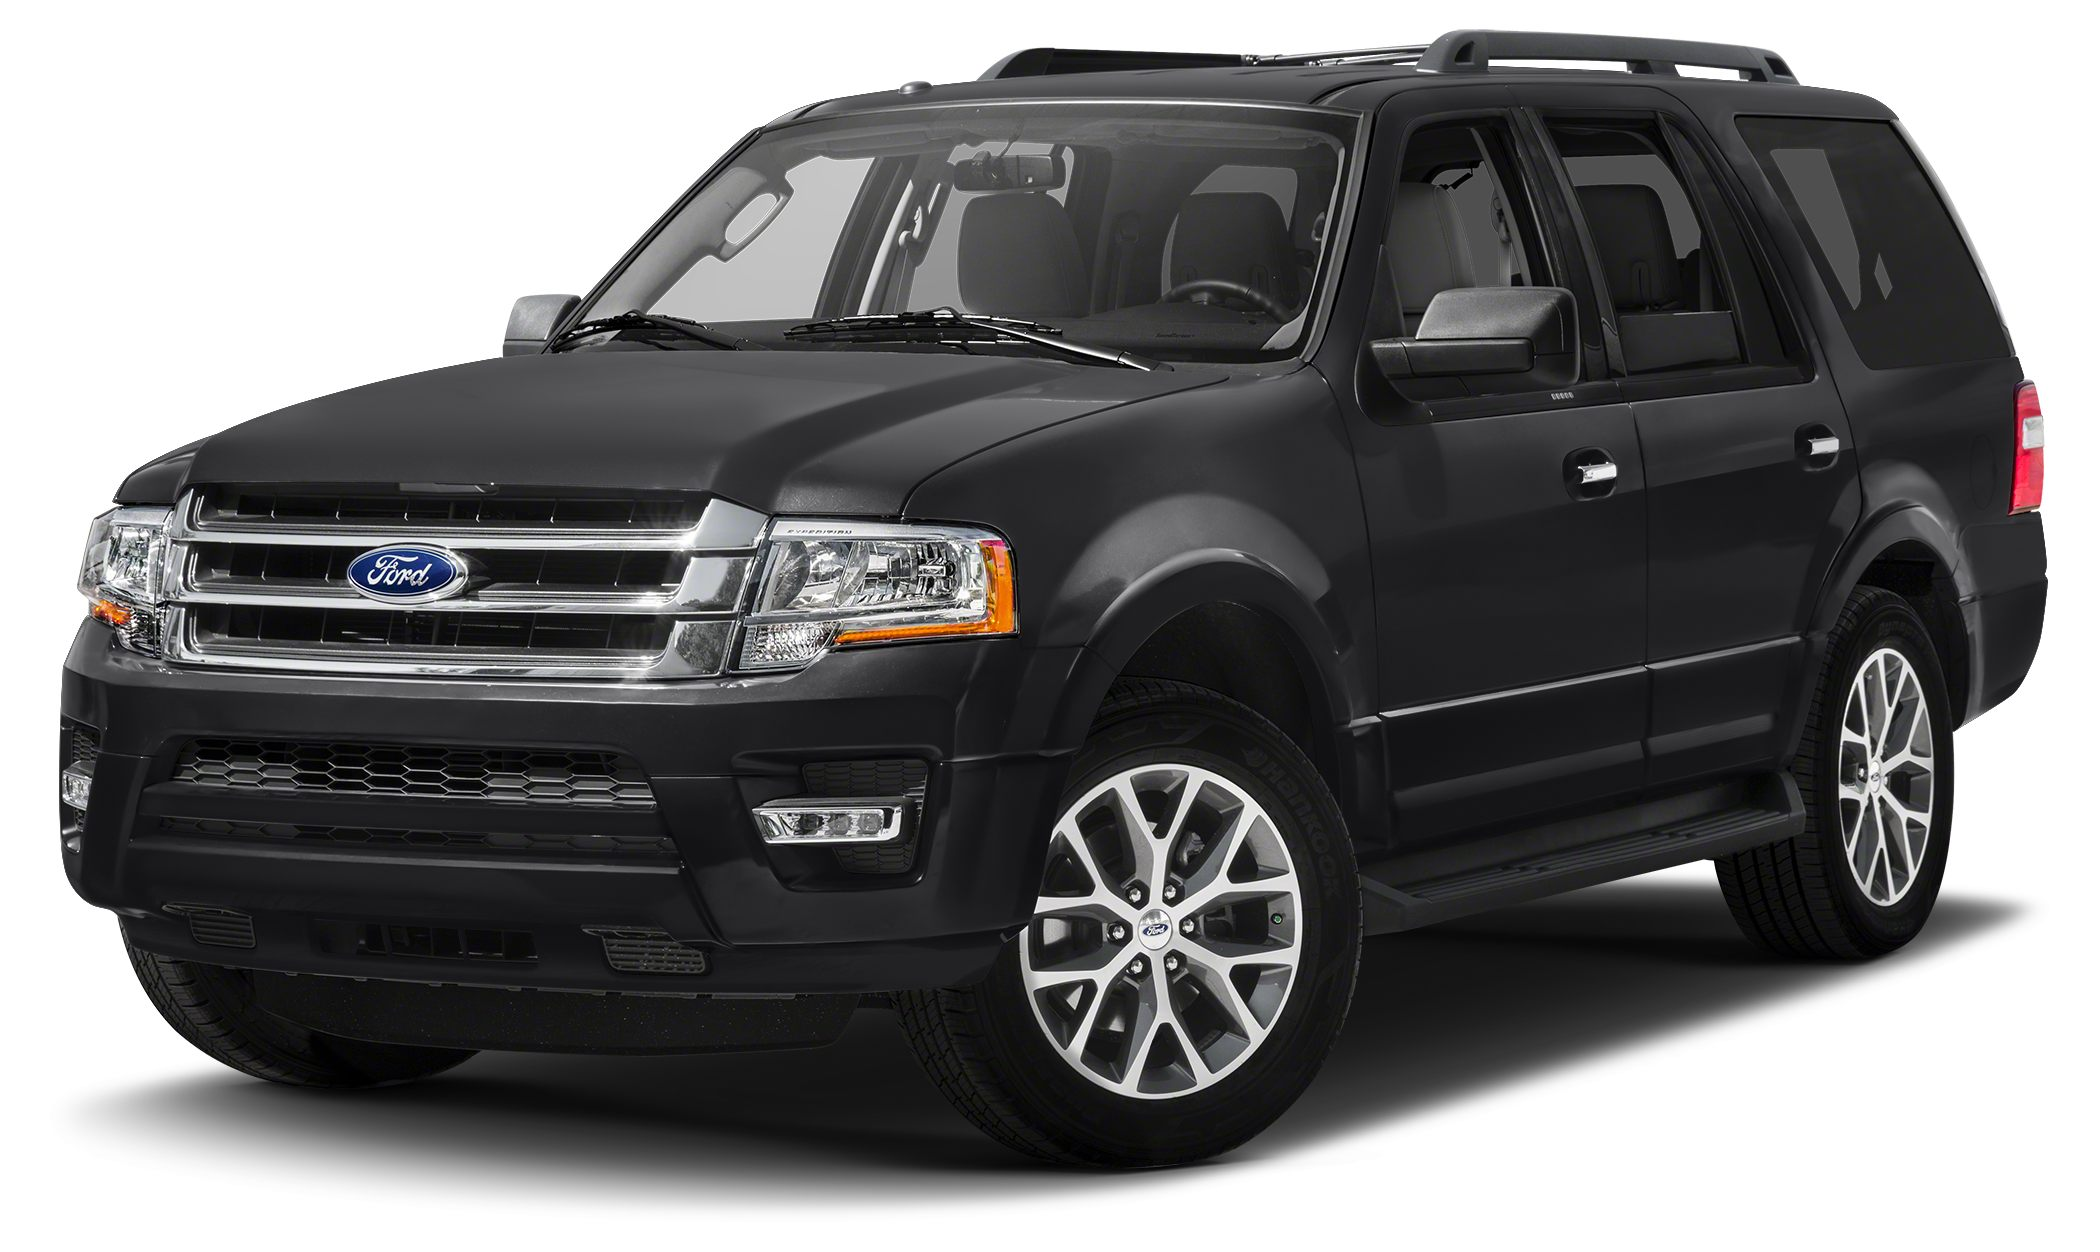 2016 Ford Expedition Platinum The 2016 Ford Expedition features a new aggressive front end creates